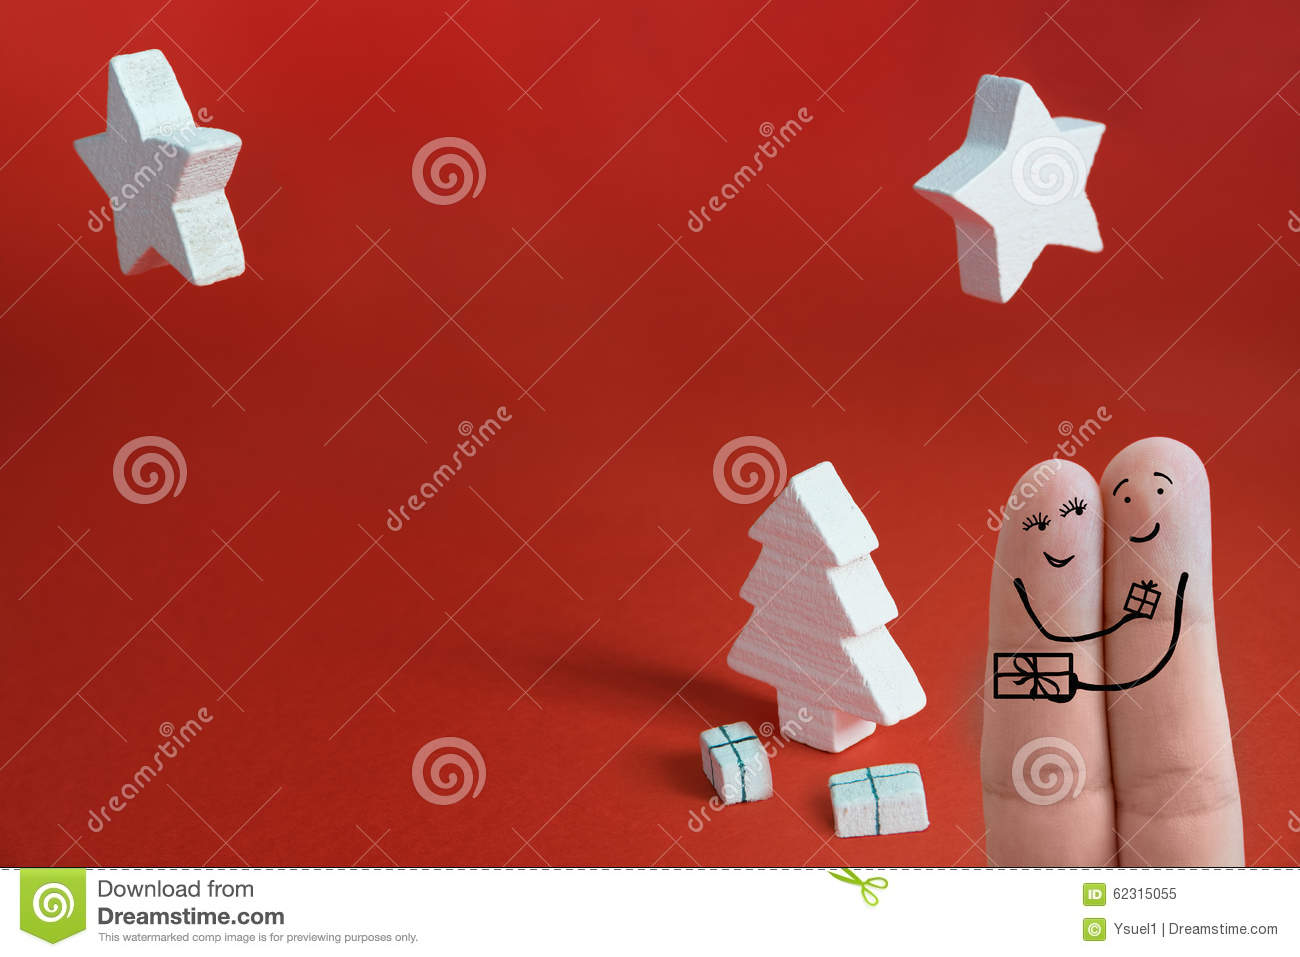 Christmas fingers 2 stock image. Image of abstract, block - 62315055